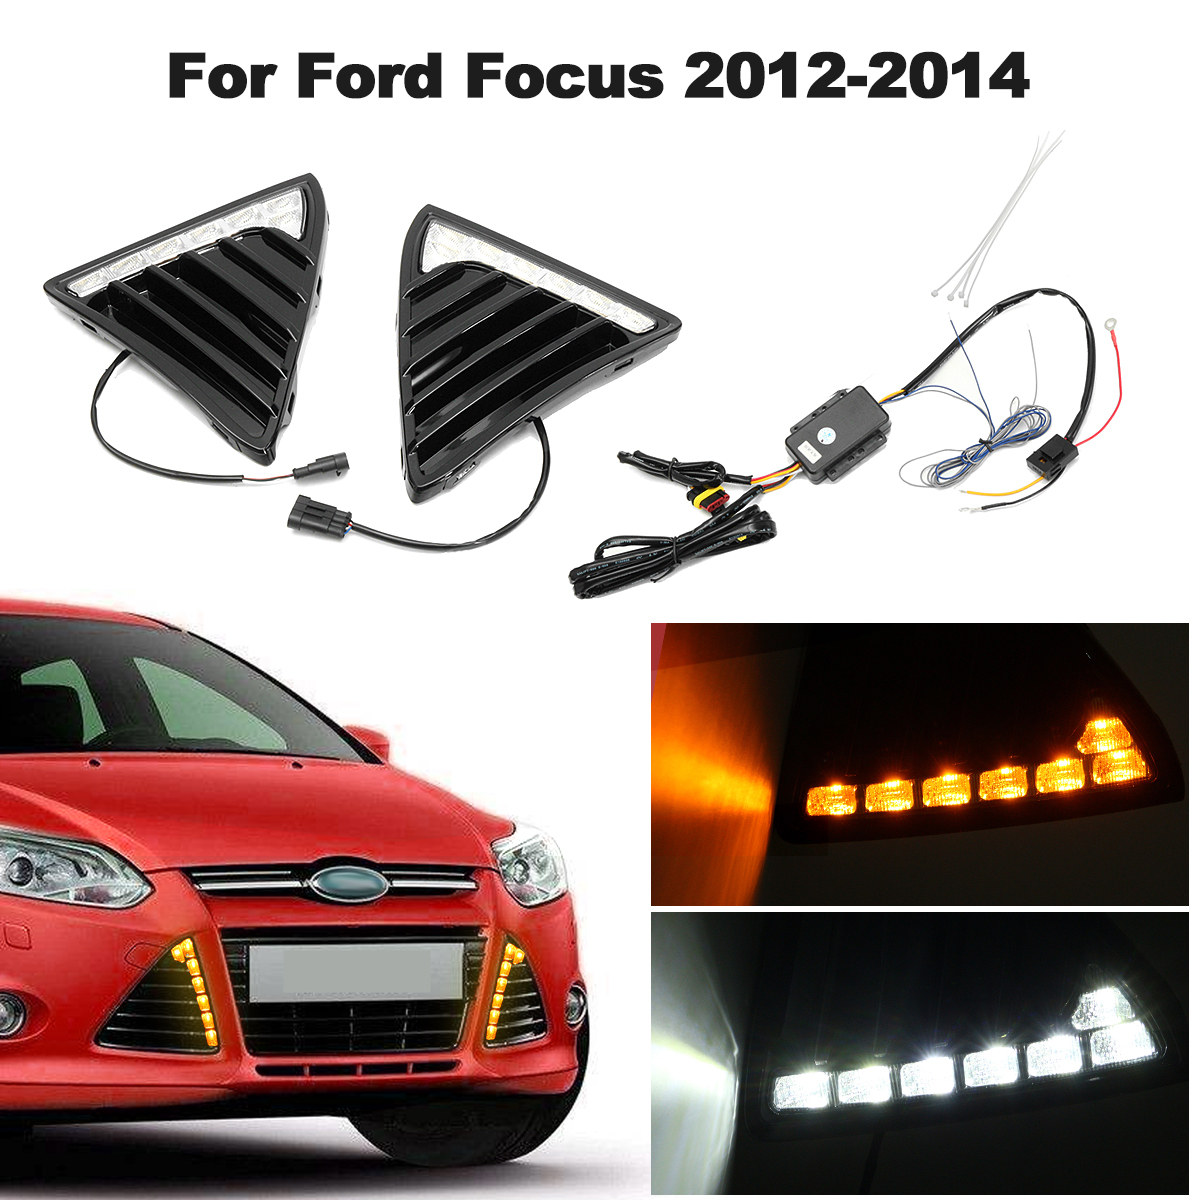 цена на For Ford for Focus 2011 2012 2013 2014 Pair 12V Car LED Daytime Running Light Fog Lamp DRL Waterproof White Light New